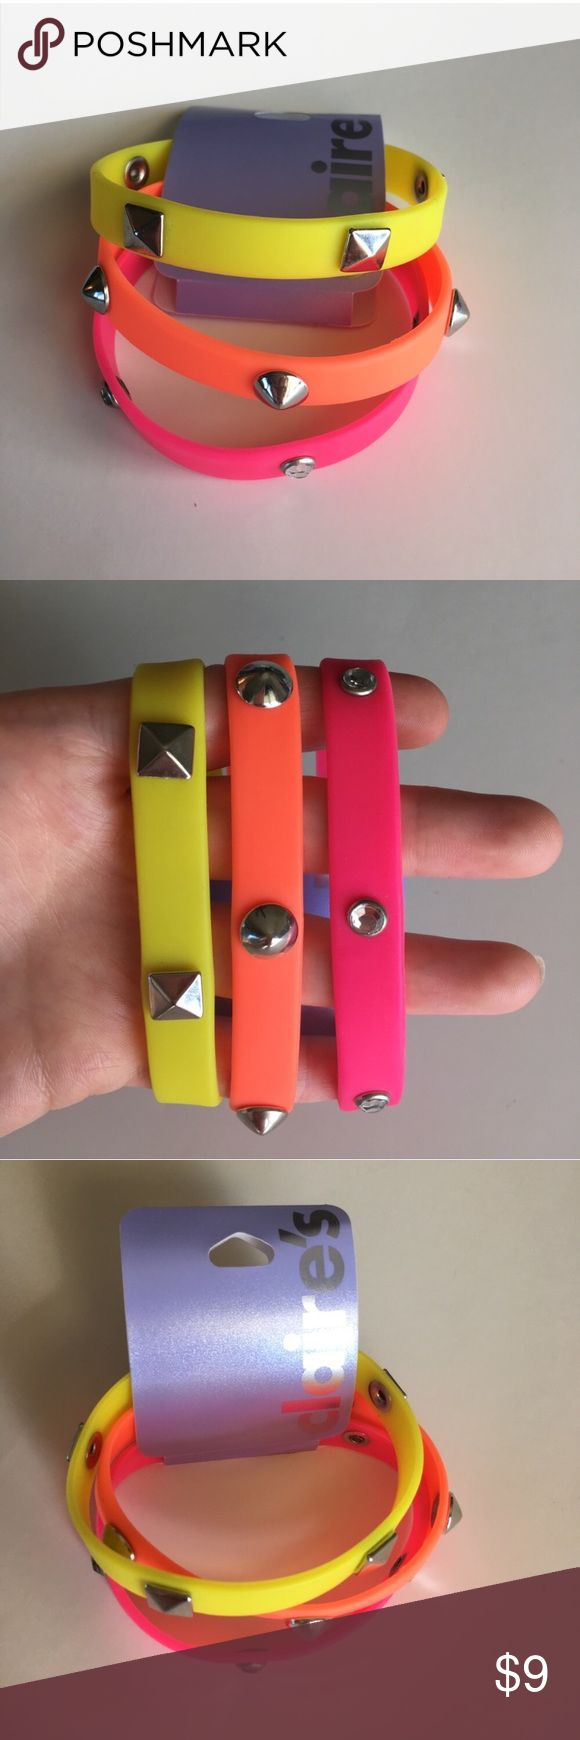 🆕3 Claire's Rubber Studded Bracelets Neon Pink Brand New 3 Claire's Rubber Silicon Bracelets  Can be worn together or separately Stackable  •Neon Yellow with triangle studs •Neon Orange with pointy studs •Neon Pink with Rhinestones studs  Please ask any questions  💲Price is firm unless bundled💲 🚫No trades🚫 📦Ask About Bundle Discounts💰 Claire's Jewelry Bracelets